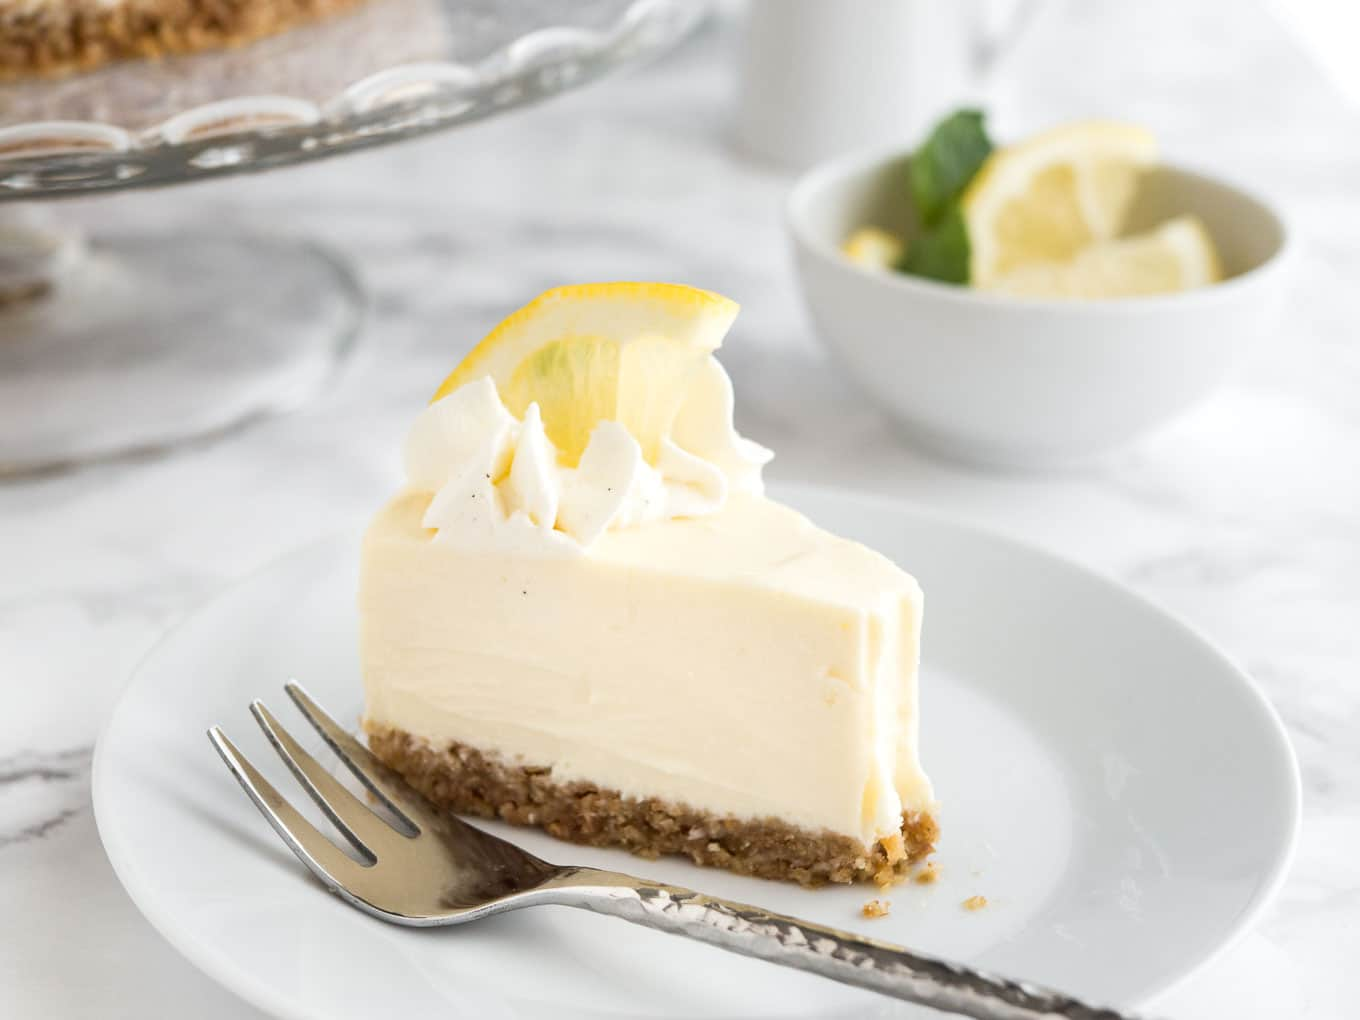 This EASY Lemon Cream Pie is full of lemon flavor and made with only a few ingredients! An easy-to-prep lemon pie recipe that comes together in minutes and is sure to be a crowd-pleaser.